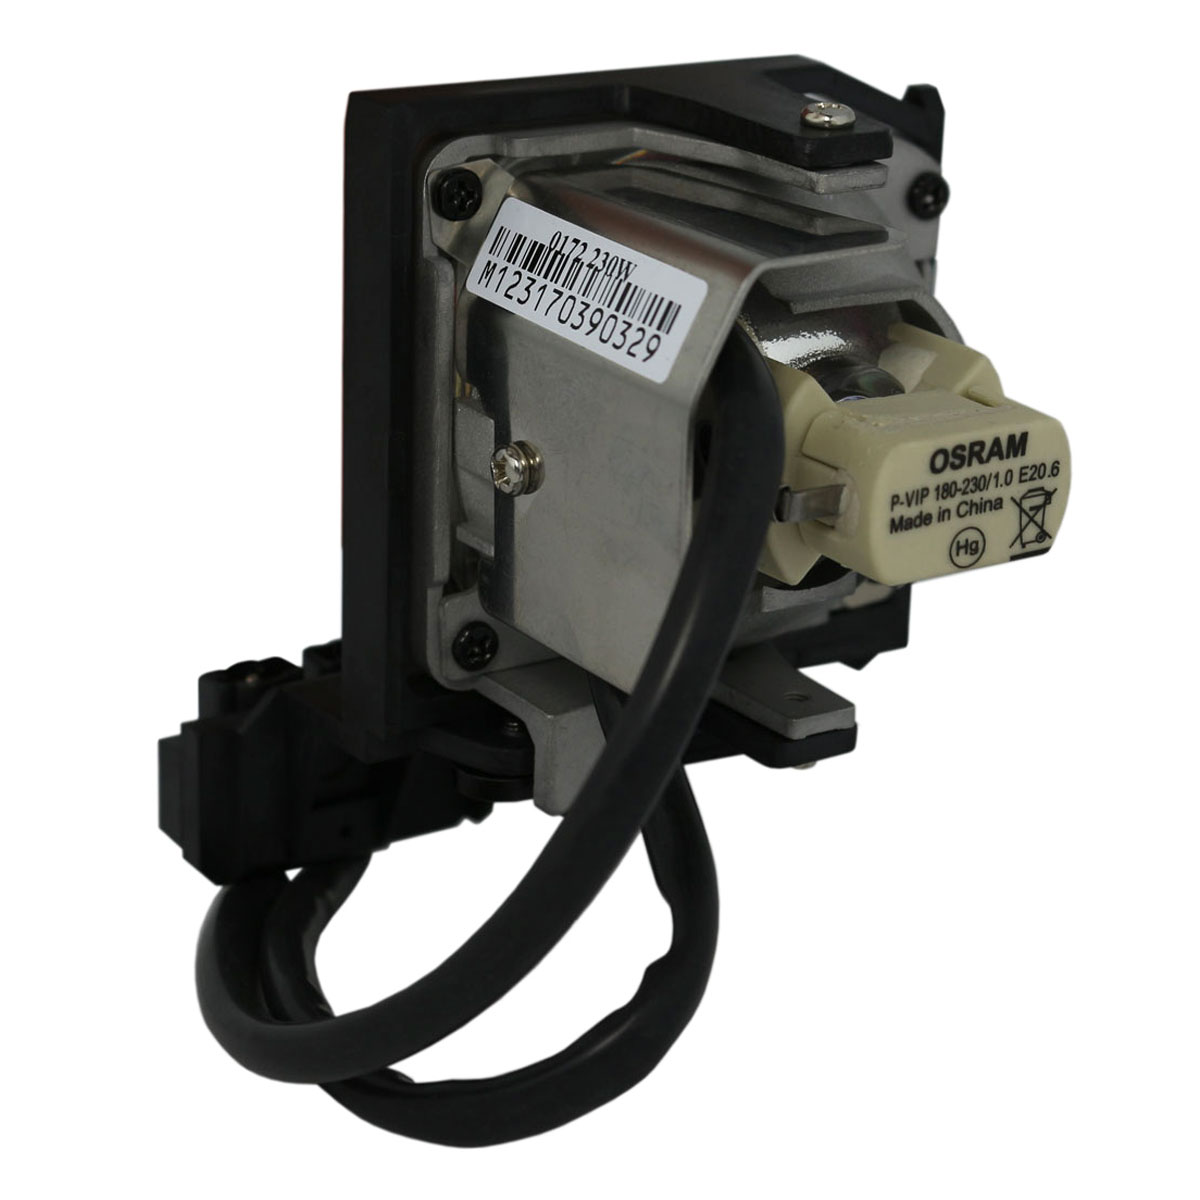 Lutema Economy Bulb for 3M Digital Media System 815 Projector (Lamp with Housing) - image 4 of 5